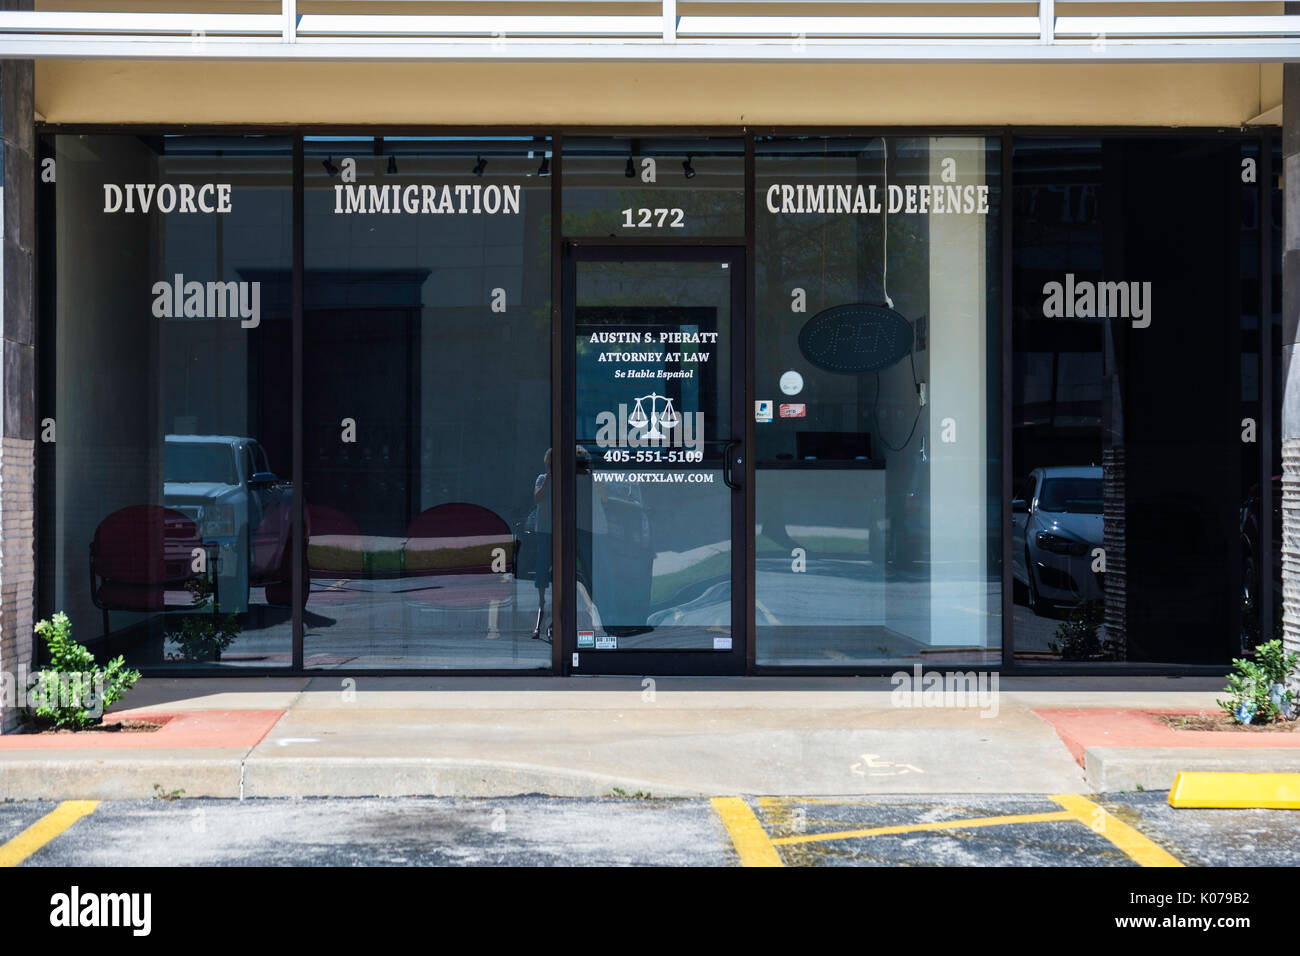 The front exterior of the office of a personal injury attorney also specializing in immigration, divorce, criminal defense in Norman, Oklahoma, USA. - Stock Image